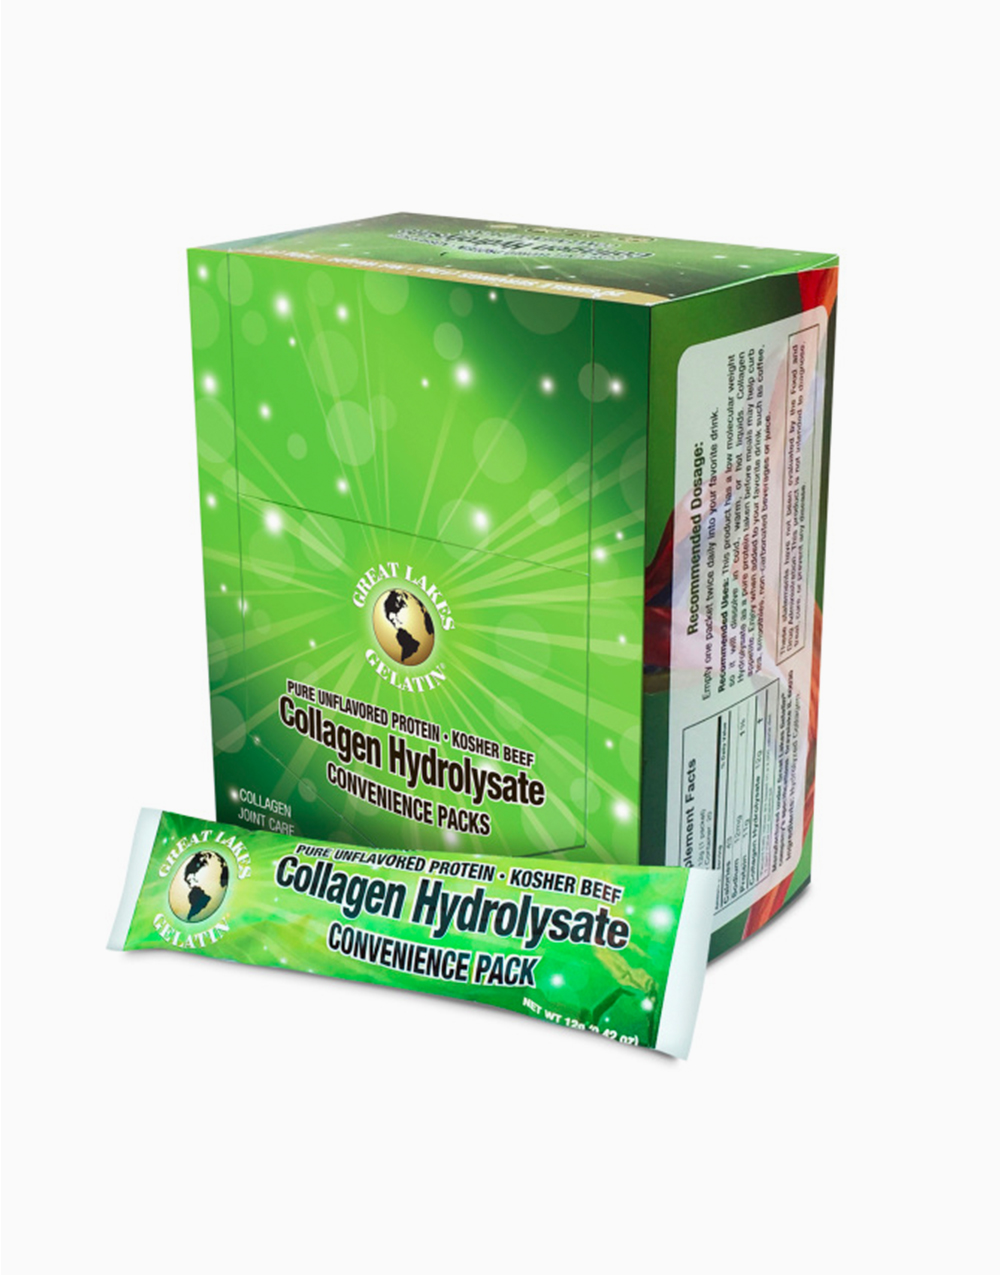 Collagen Hydrolysate Packet (12g) by Great Lakes